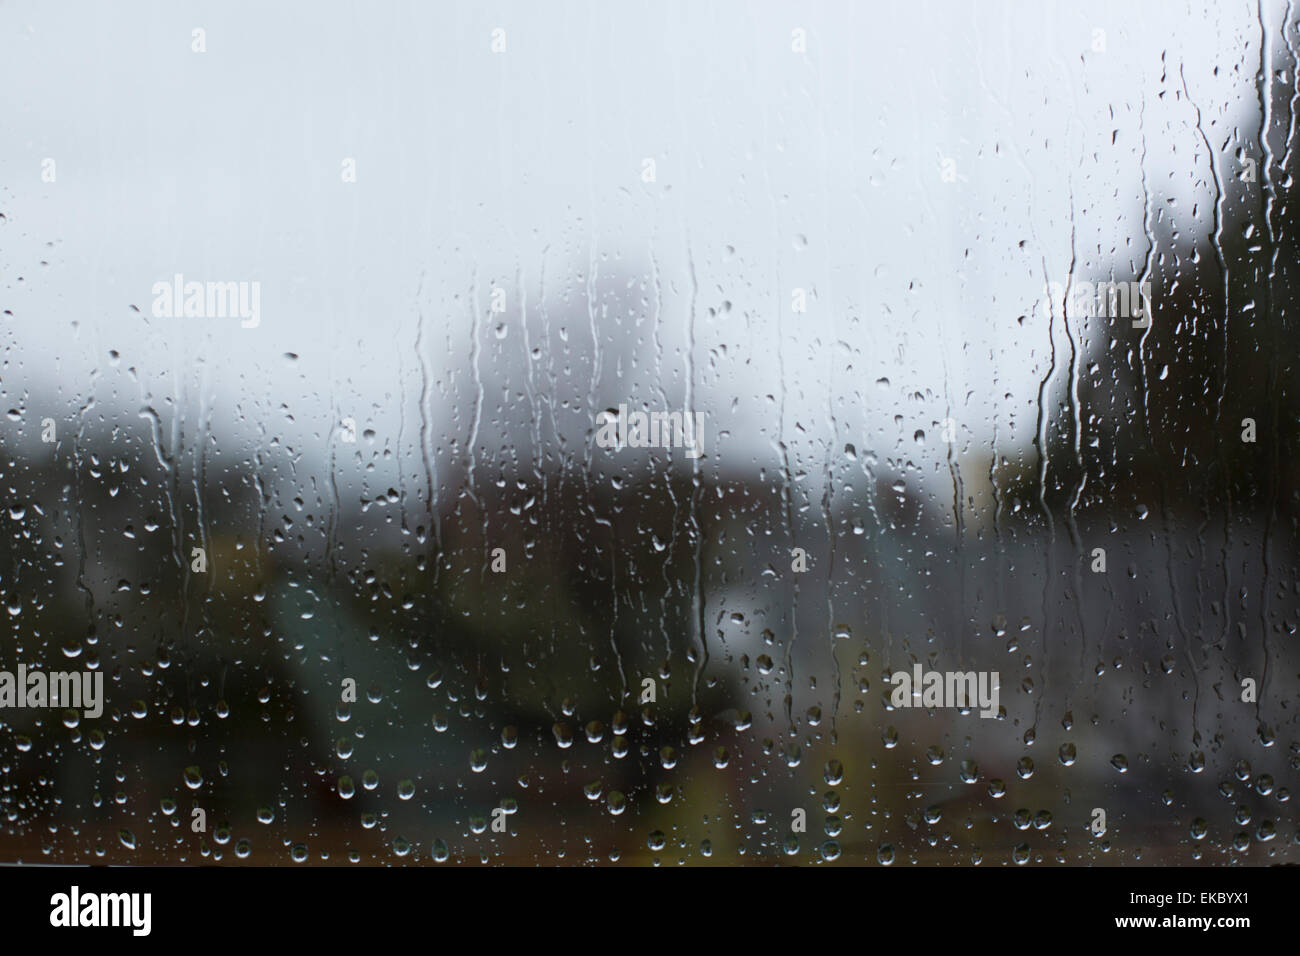 View through window pane with raindrops - Stock Image